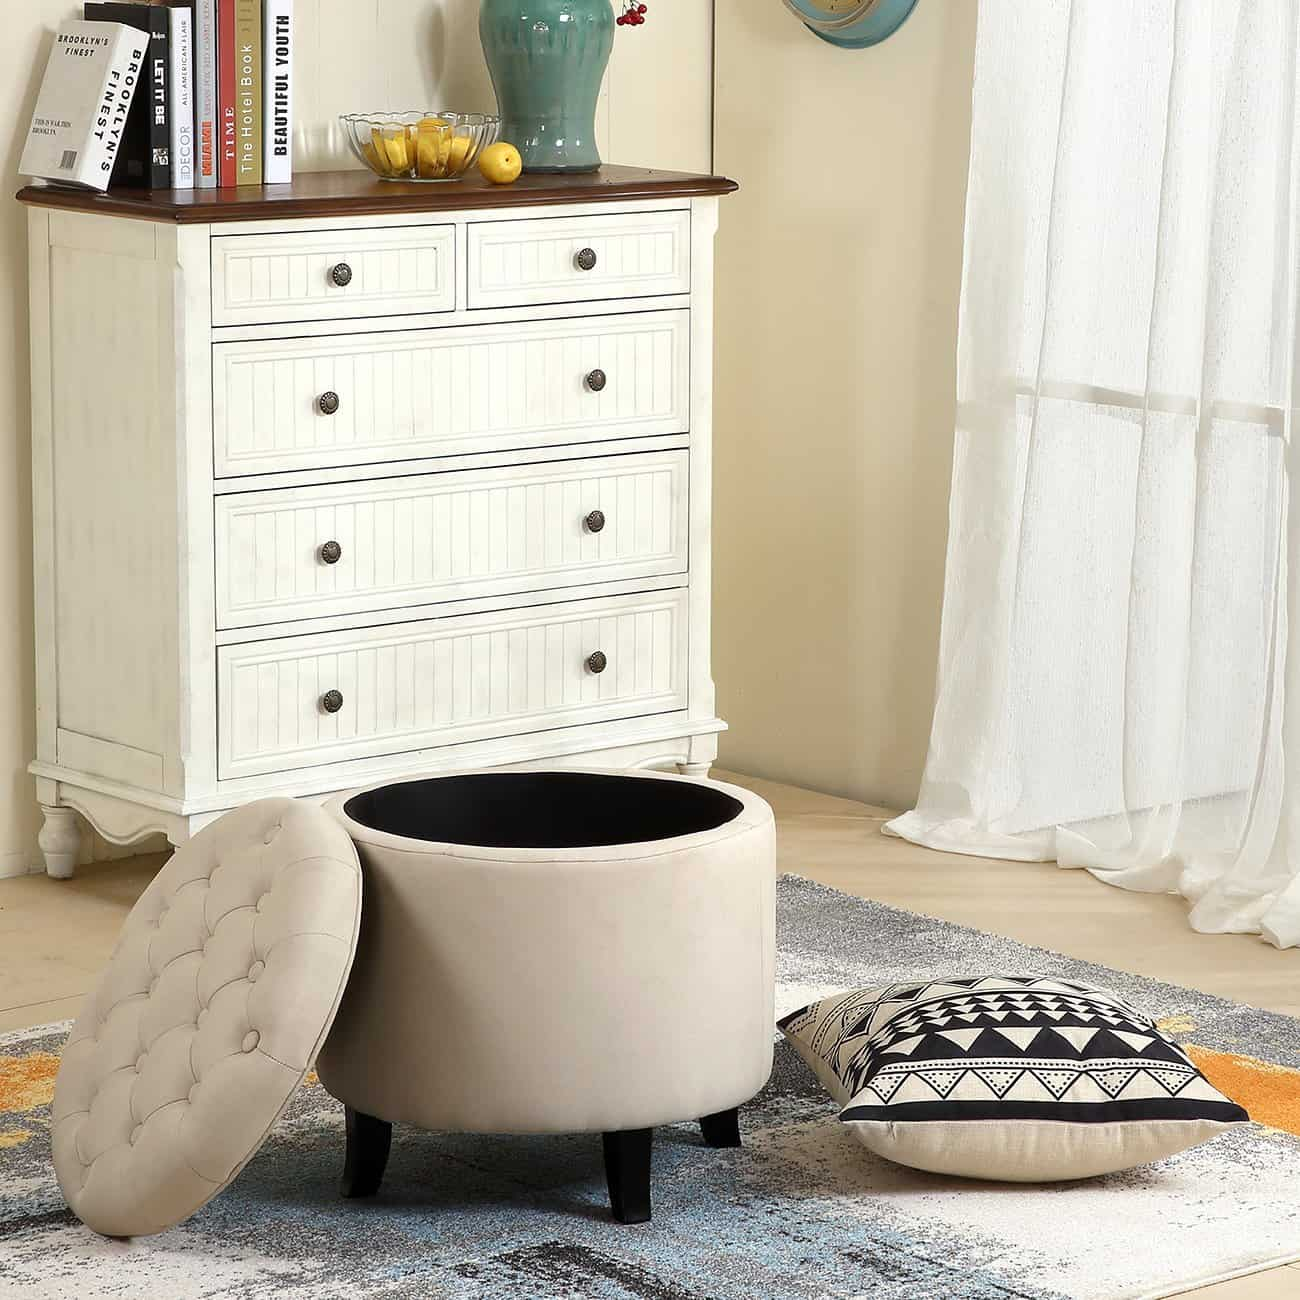 14 Best Small Ottoman Options For 2020